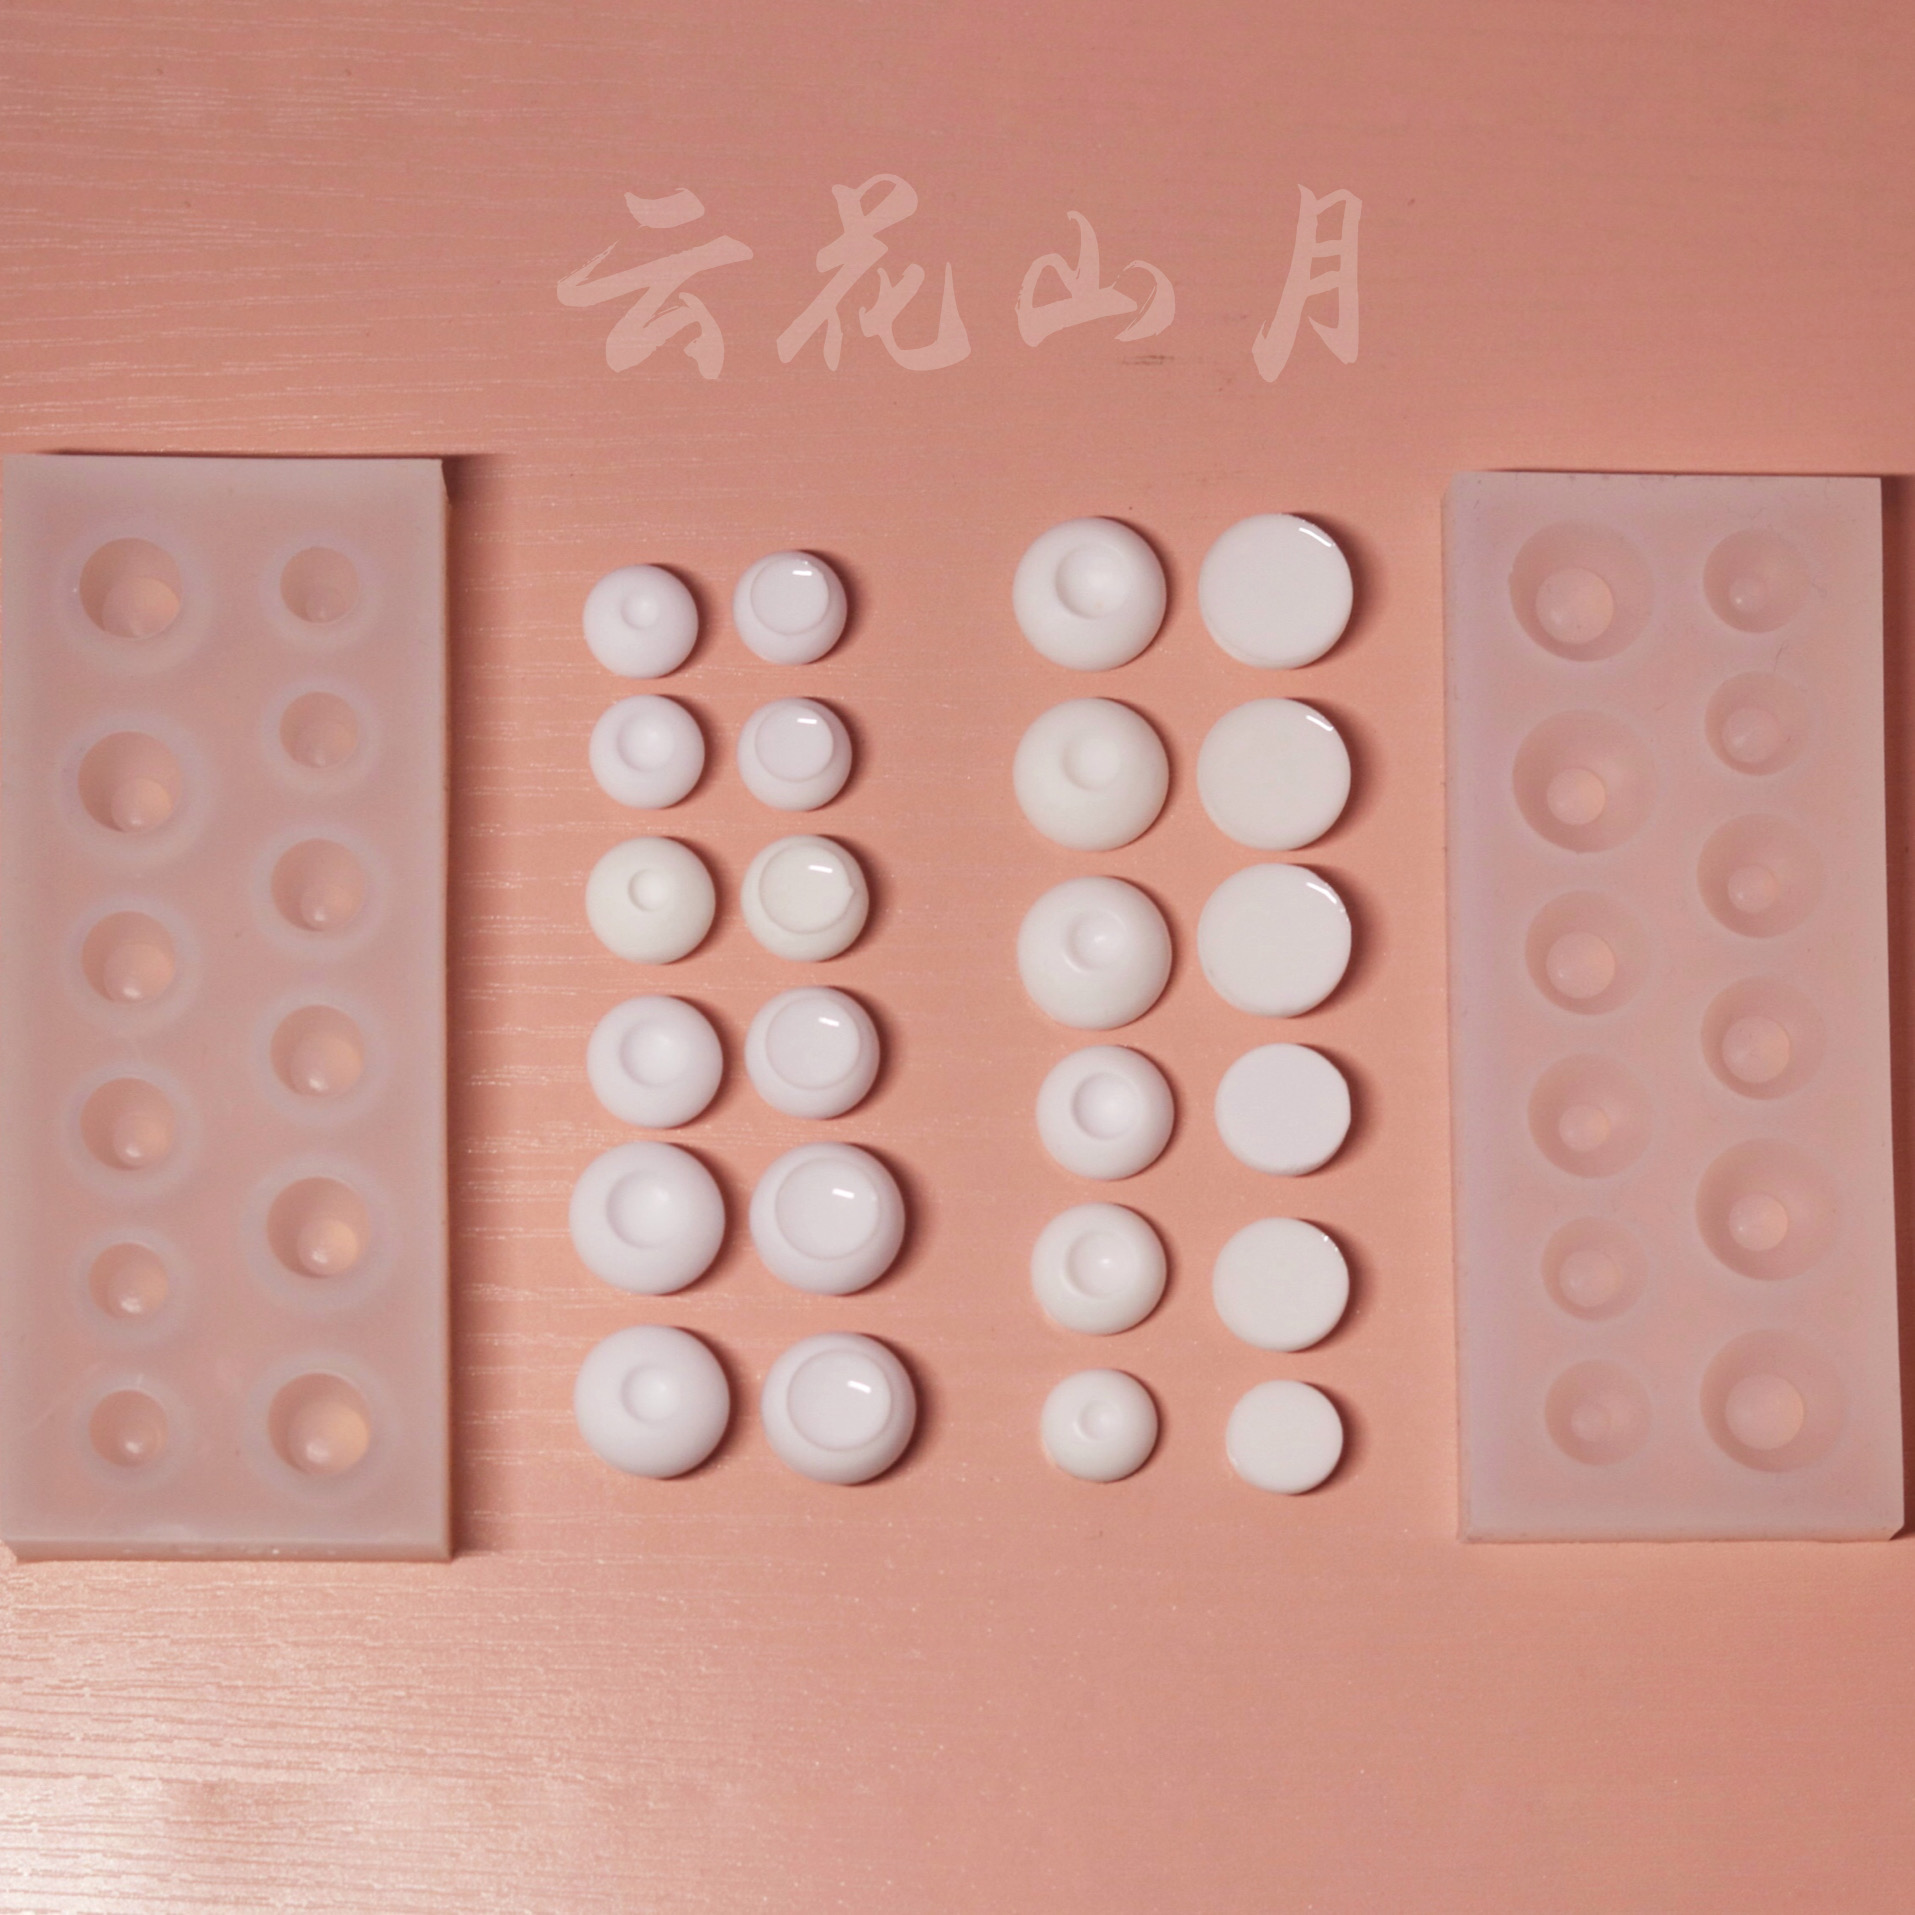 BJD resin eye mold baby eye material chessboard eye sole joint mold self made group purchase spot